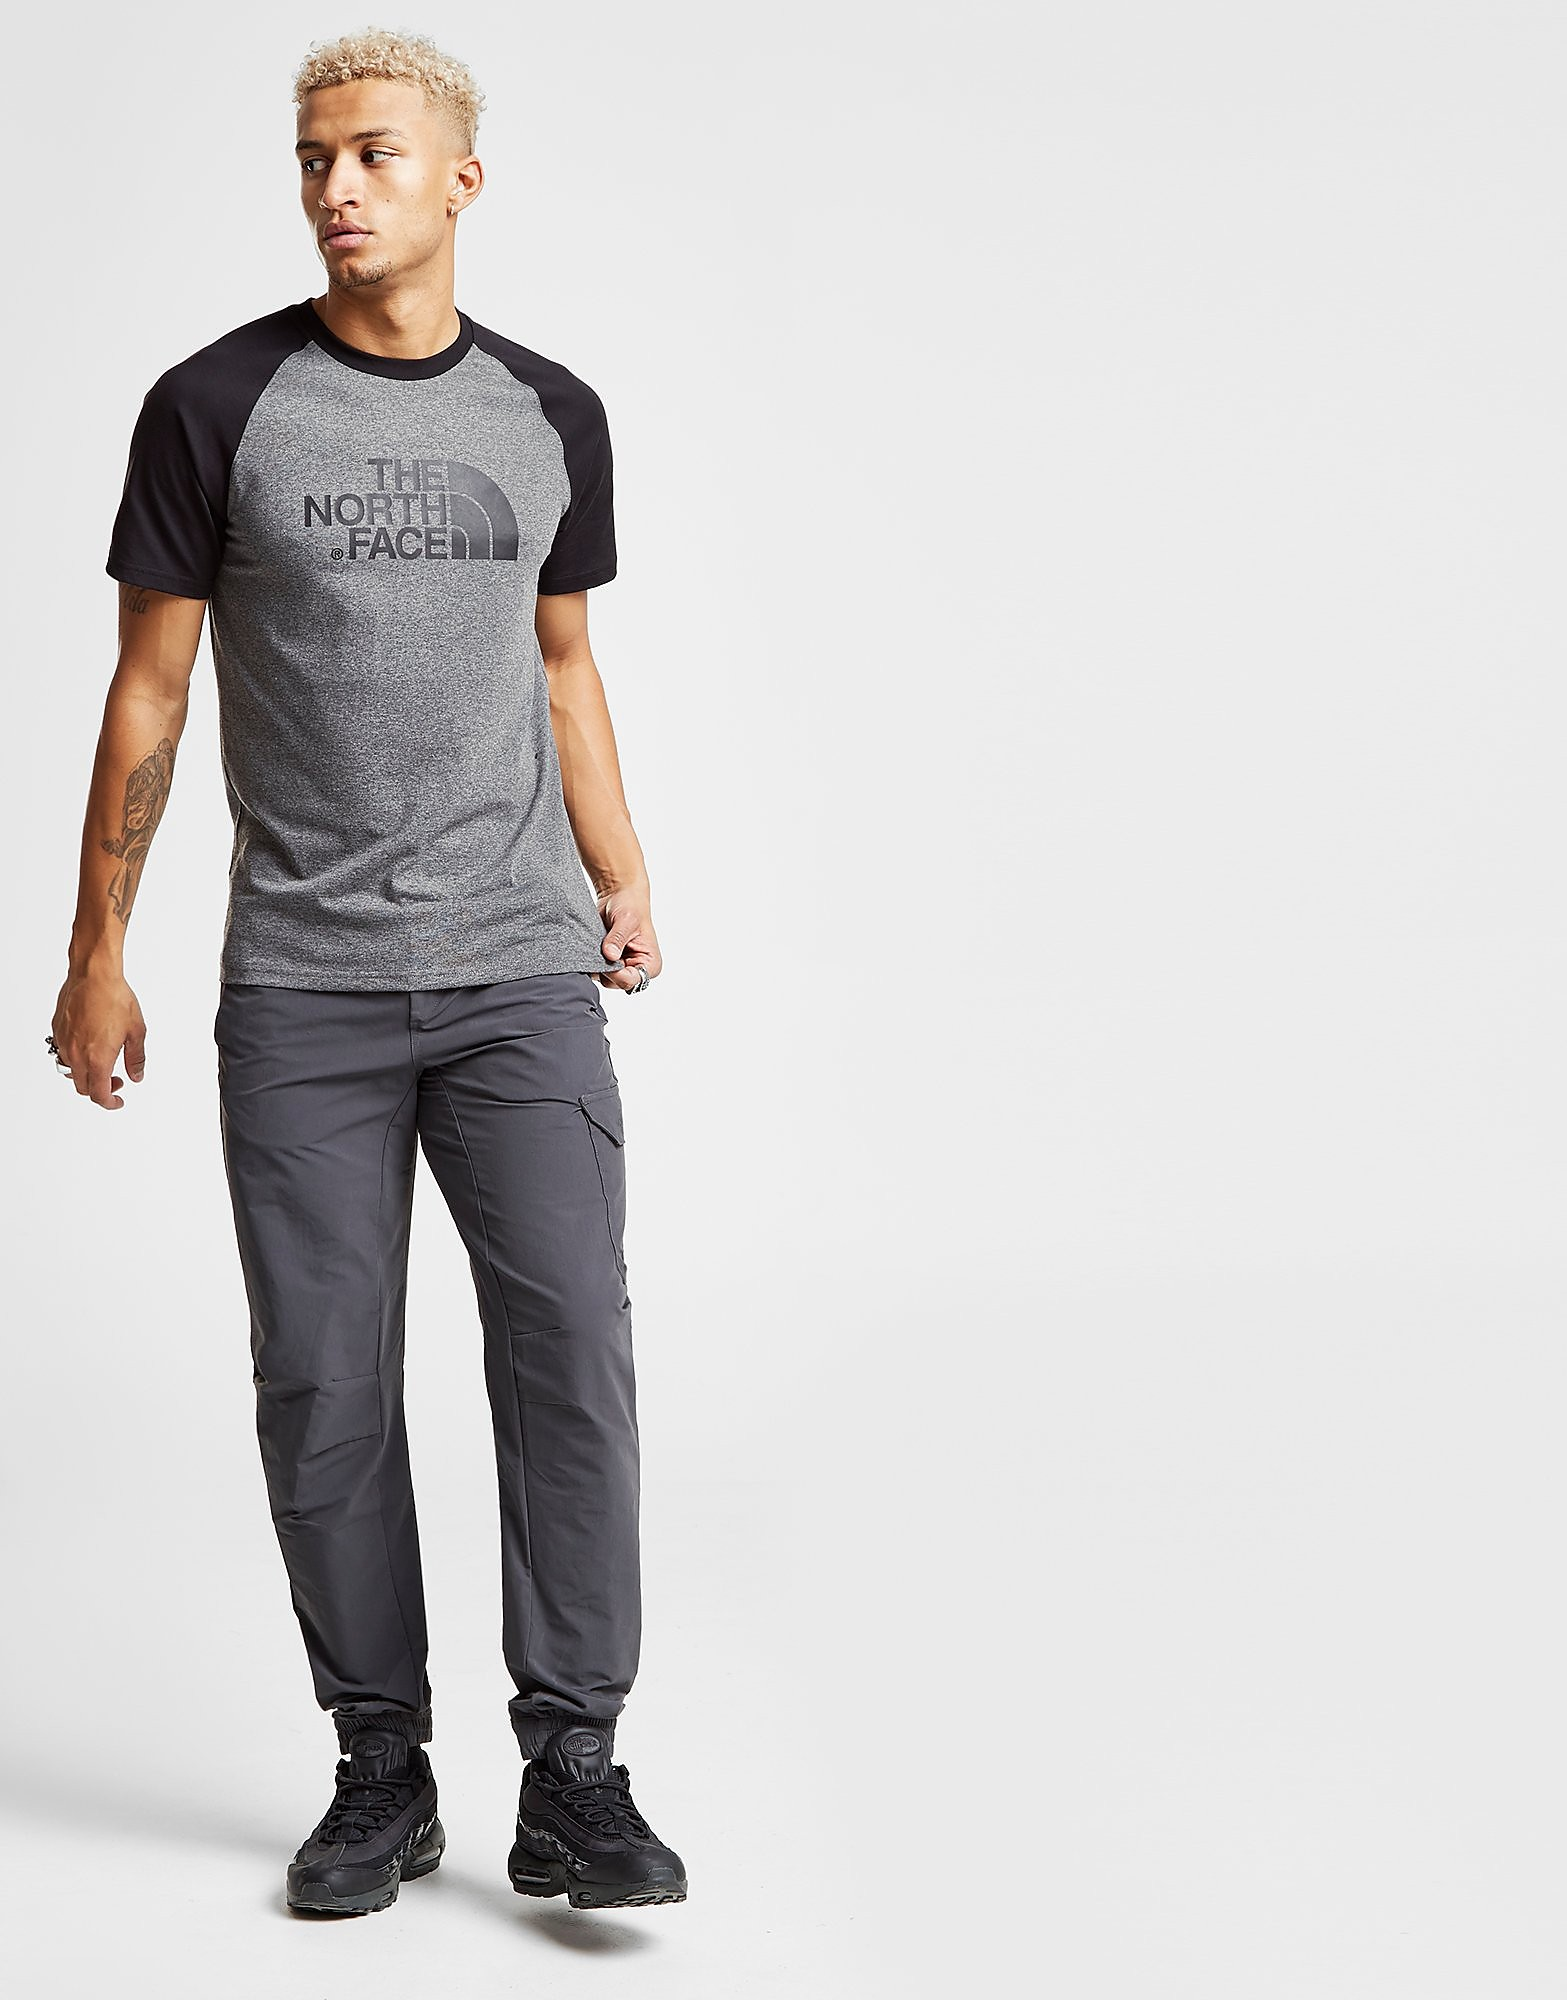 The North Face Raglan T-Shirt